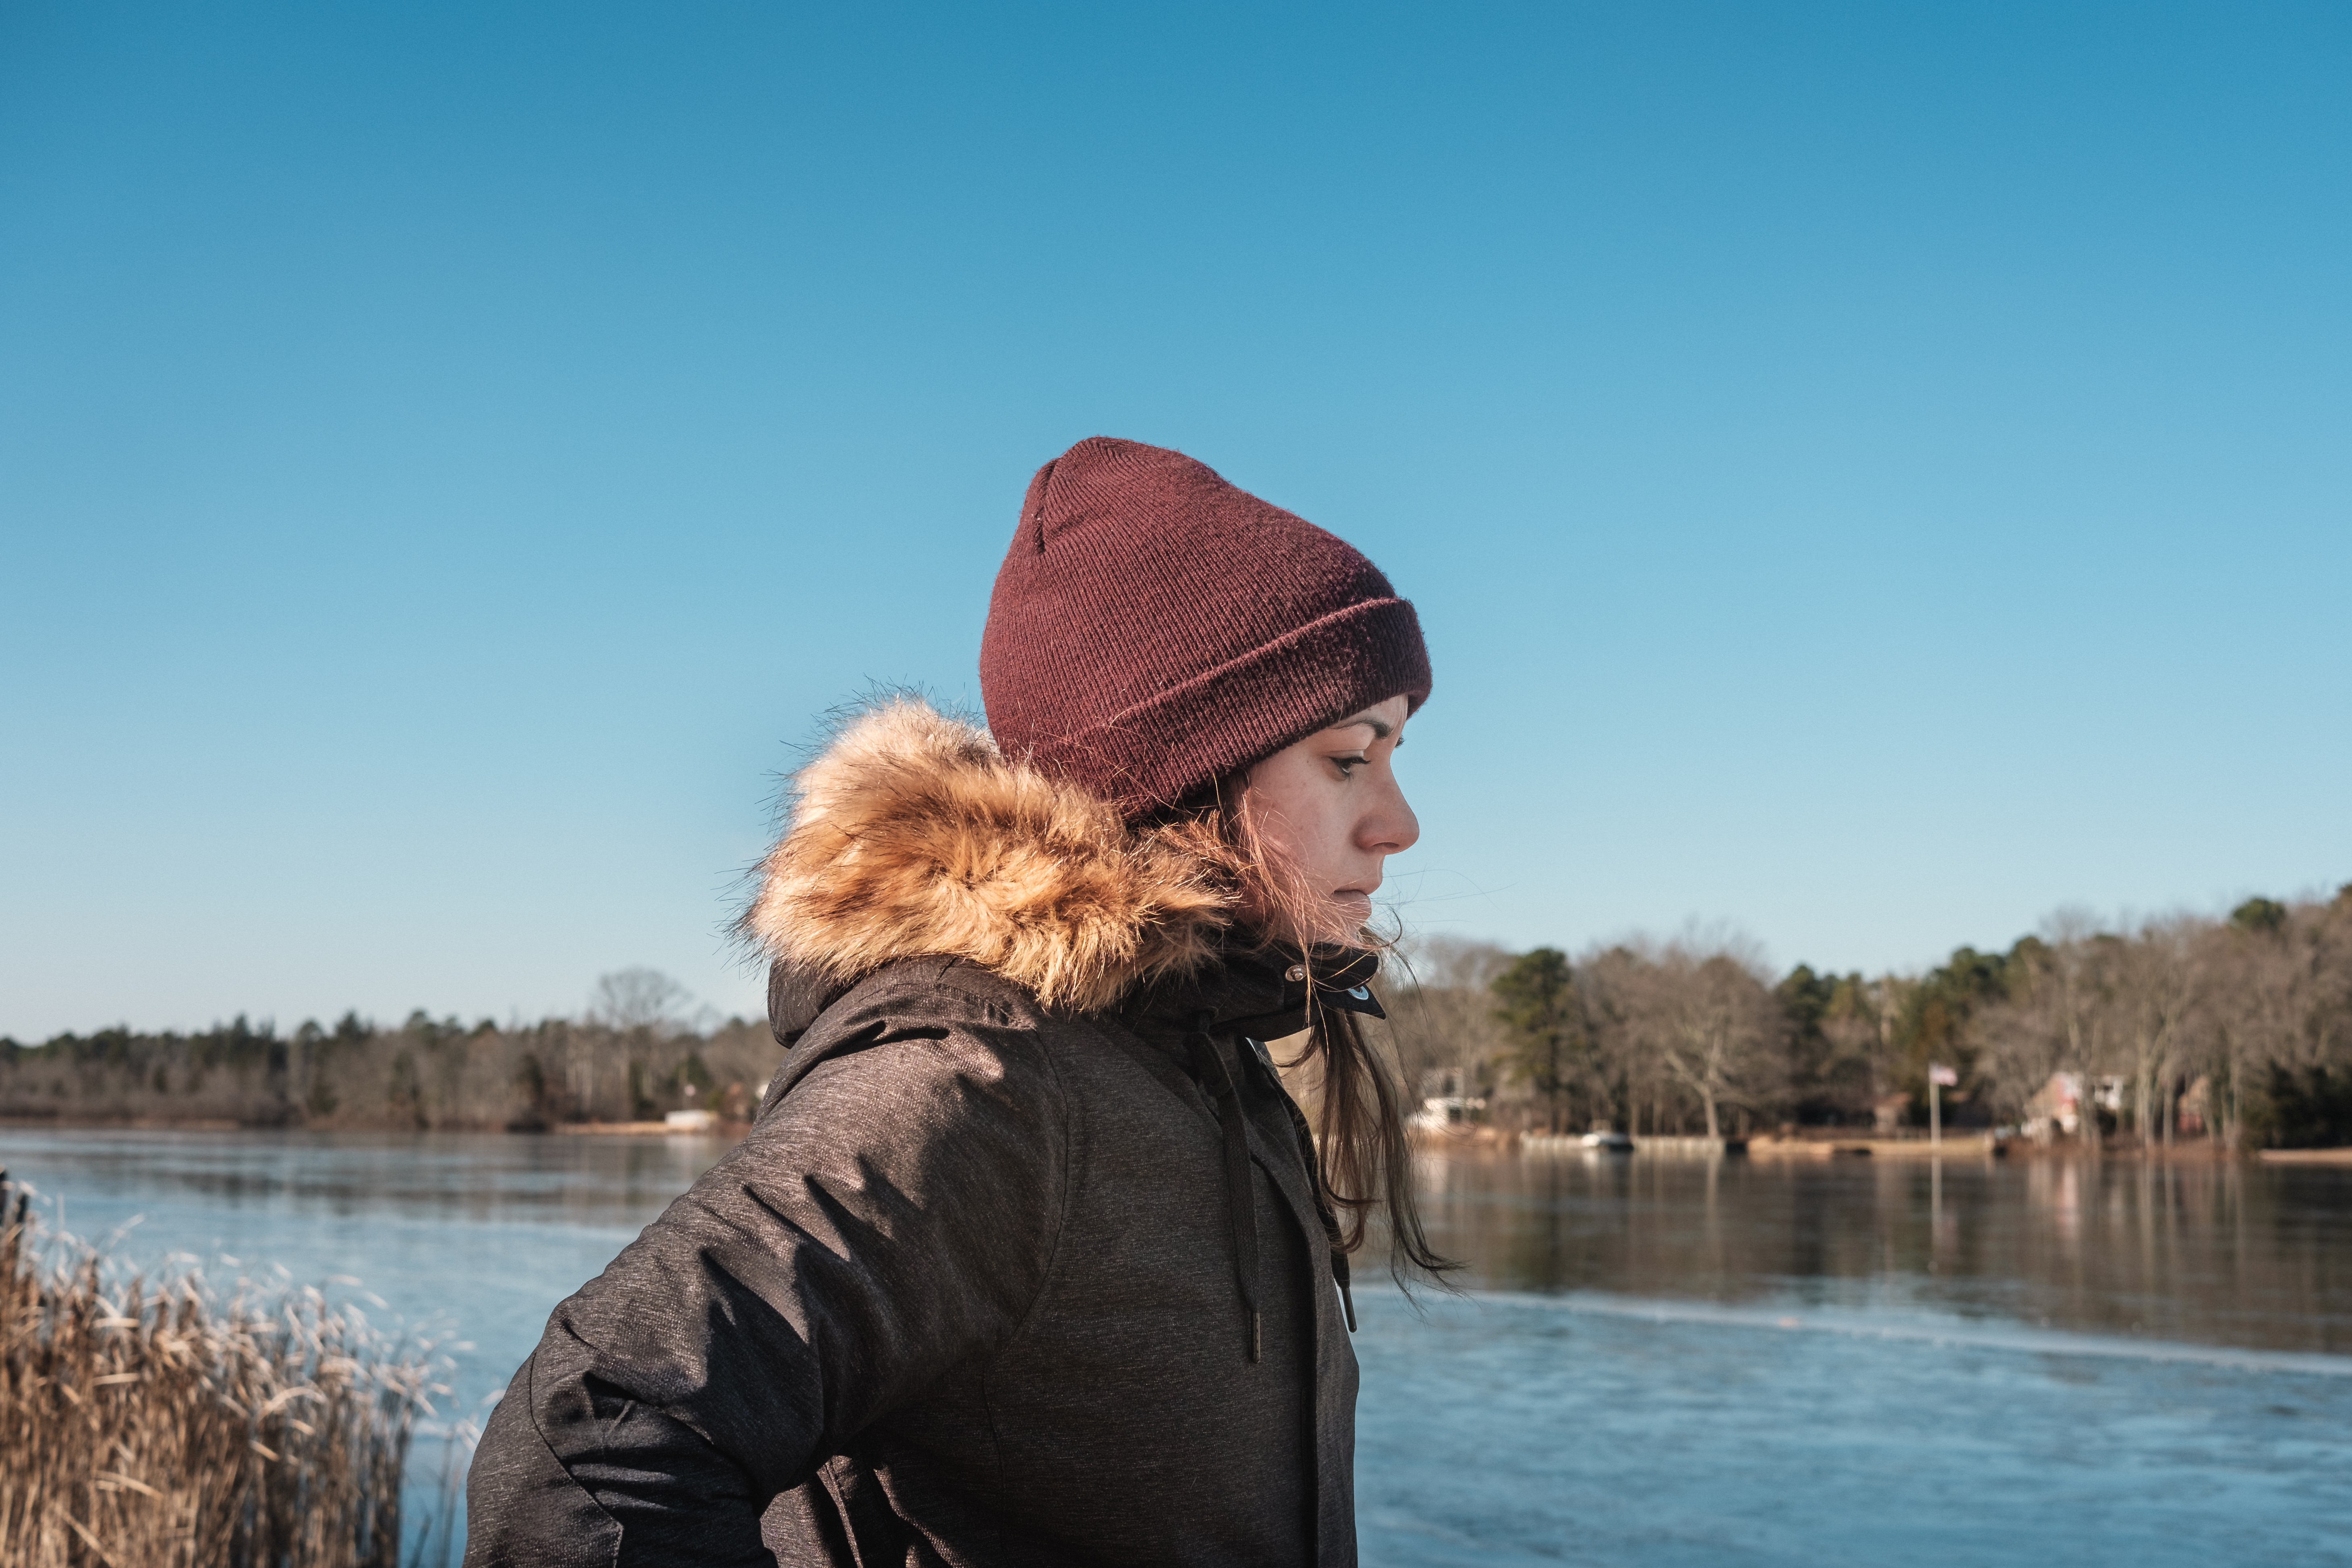 woman in brown knit cap standing beside body of water